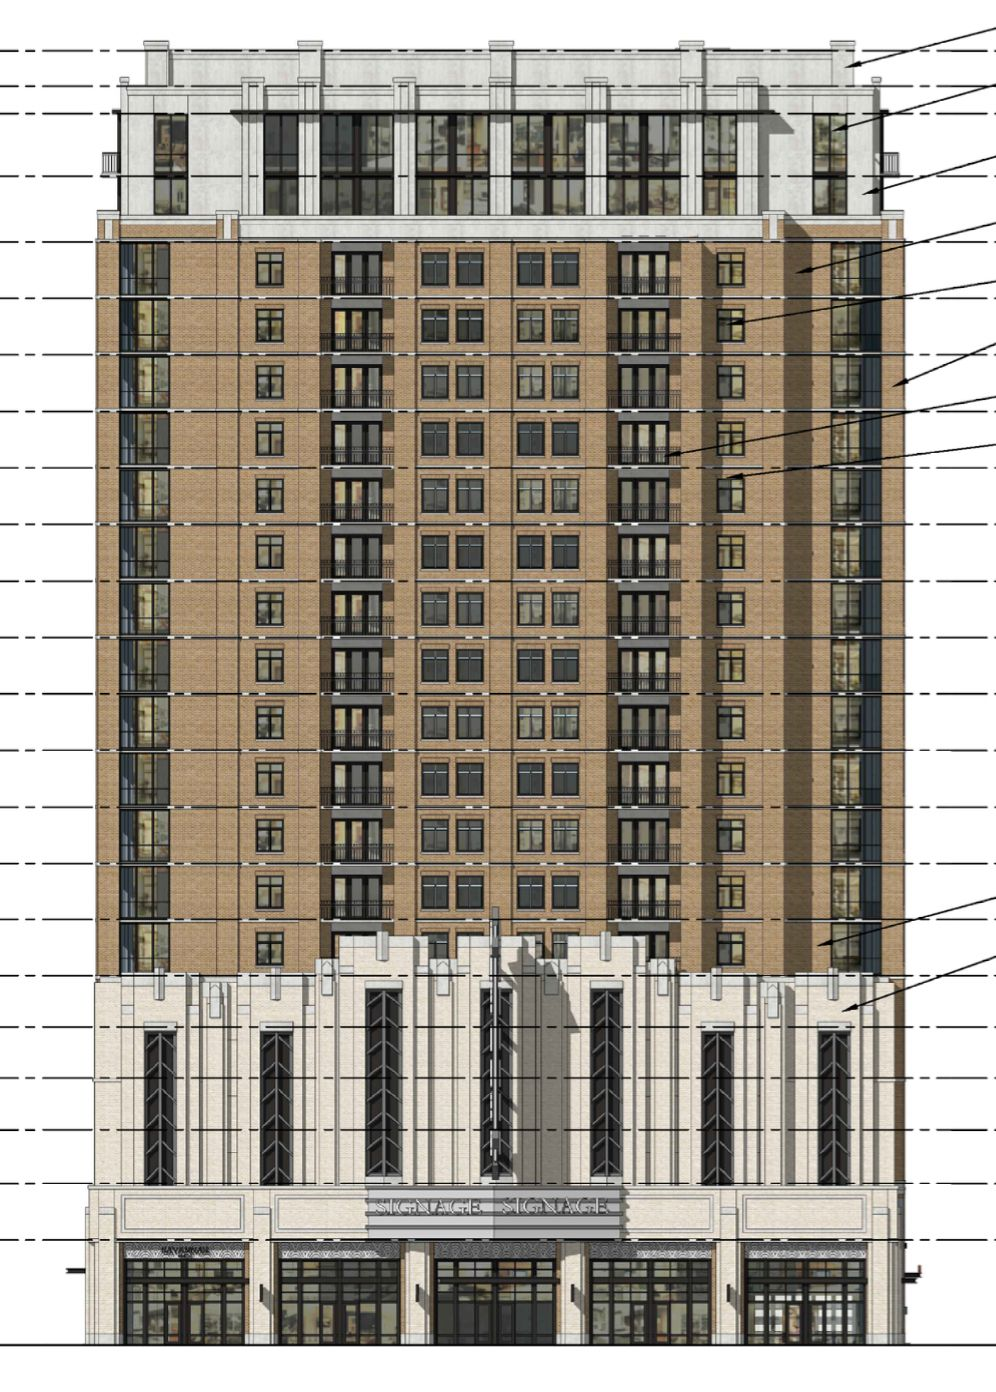 The revamp tower design has an art deco inspired front.